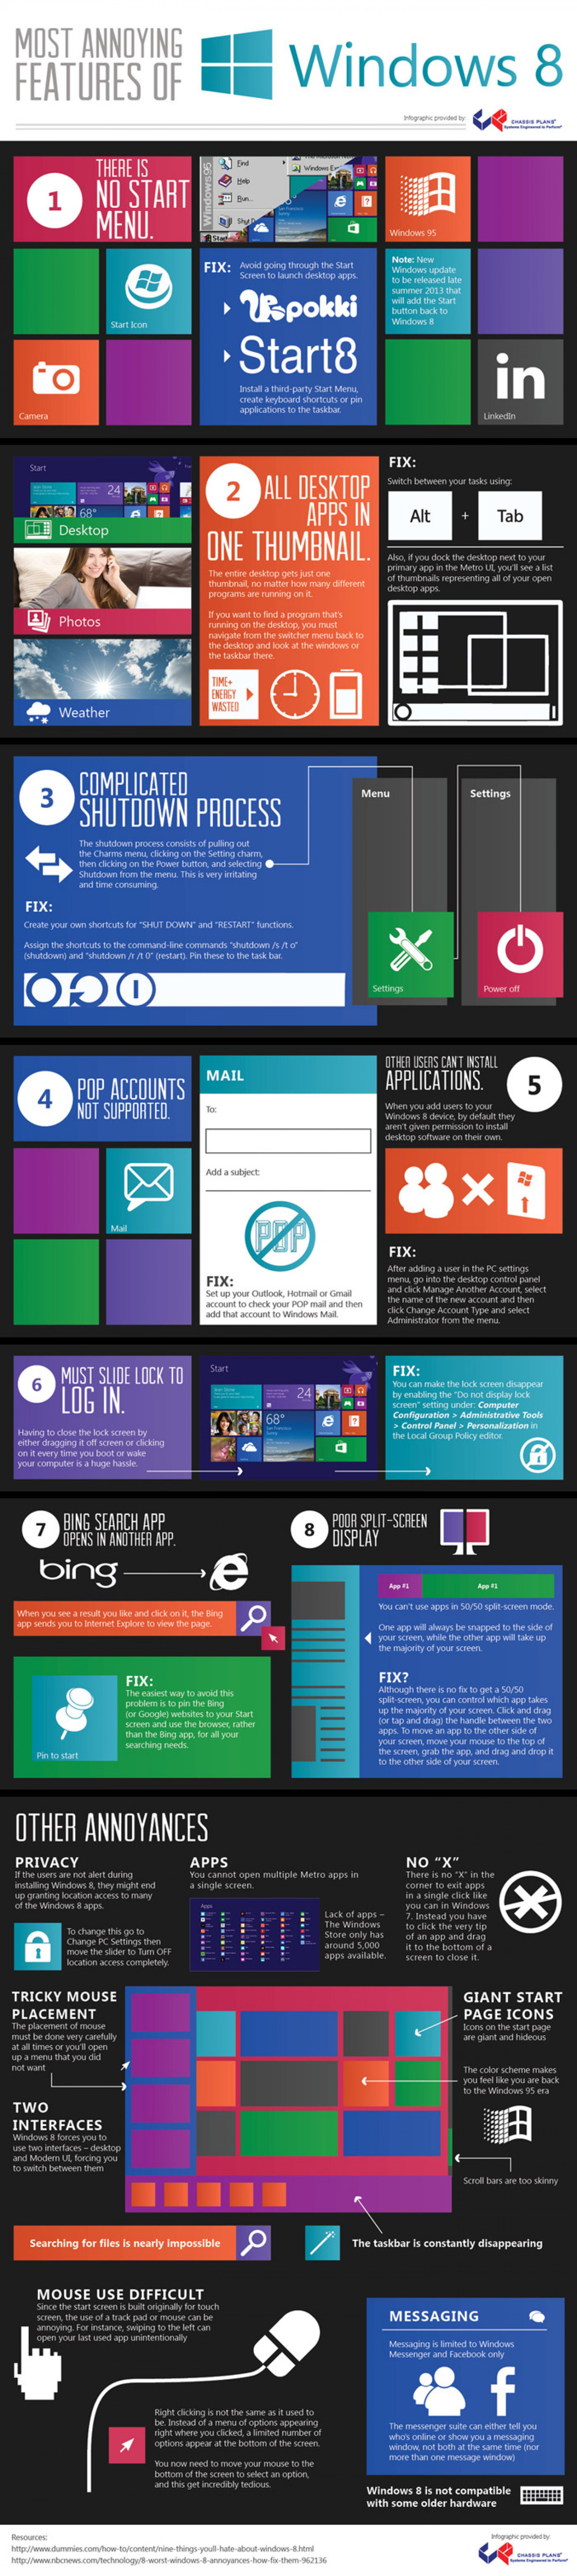 Most Annoying Features of Windows 8 Infographic